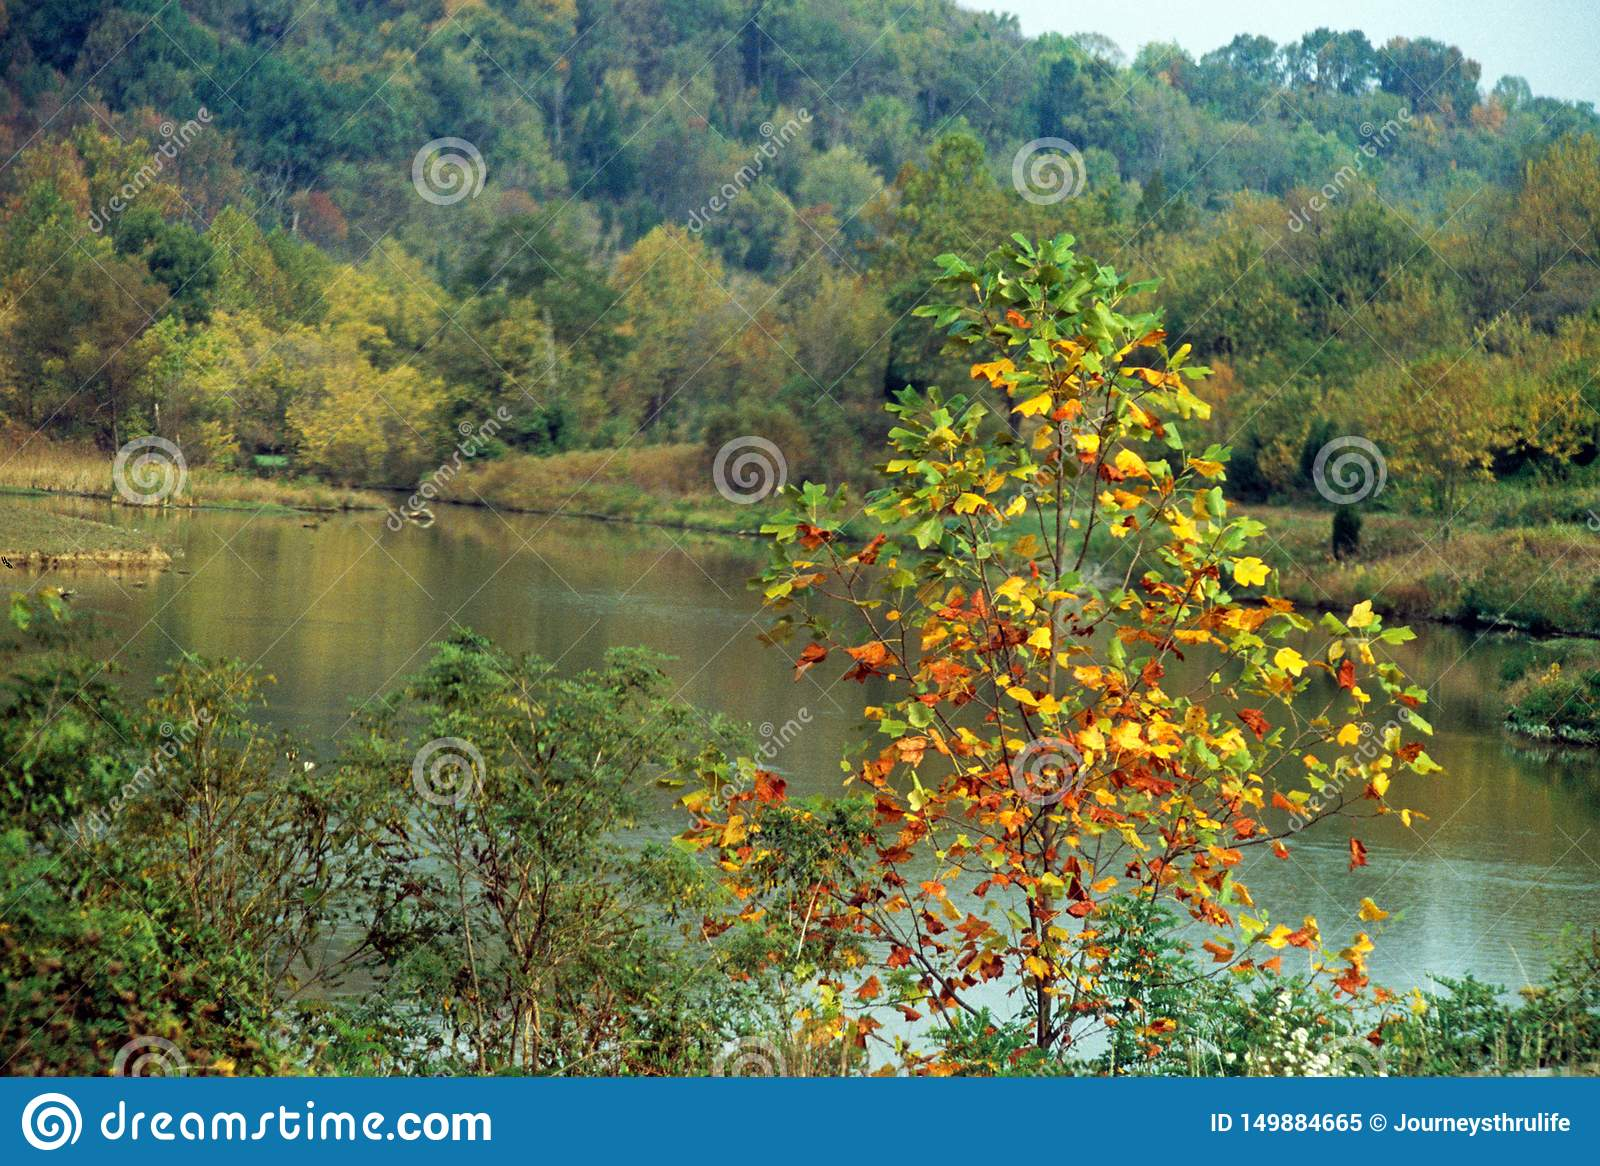 Midwestern autumn scene with colorful trees and a lake